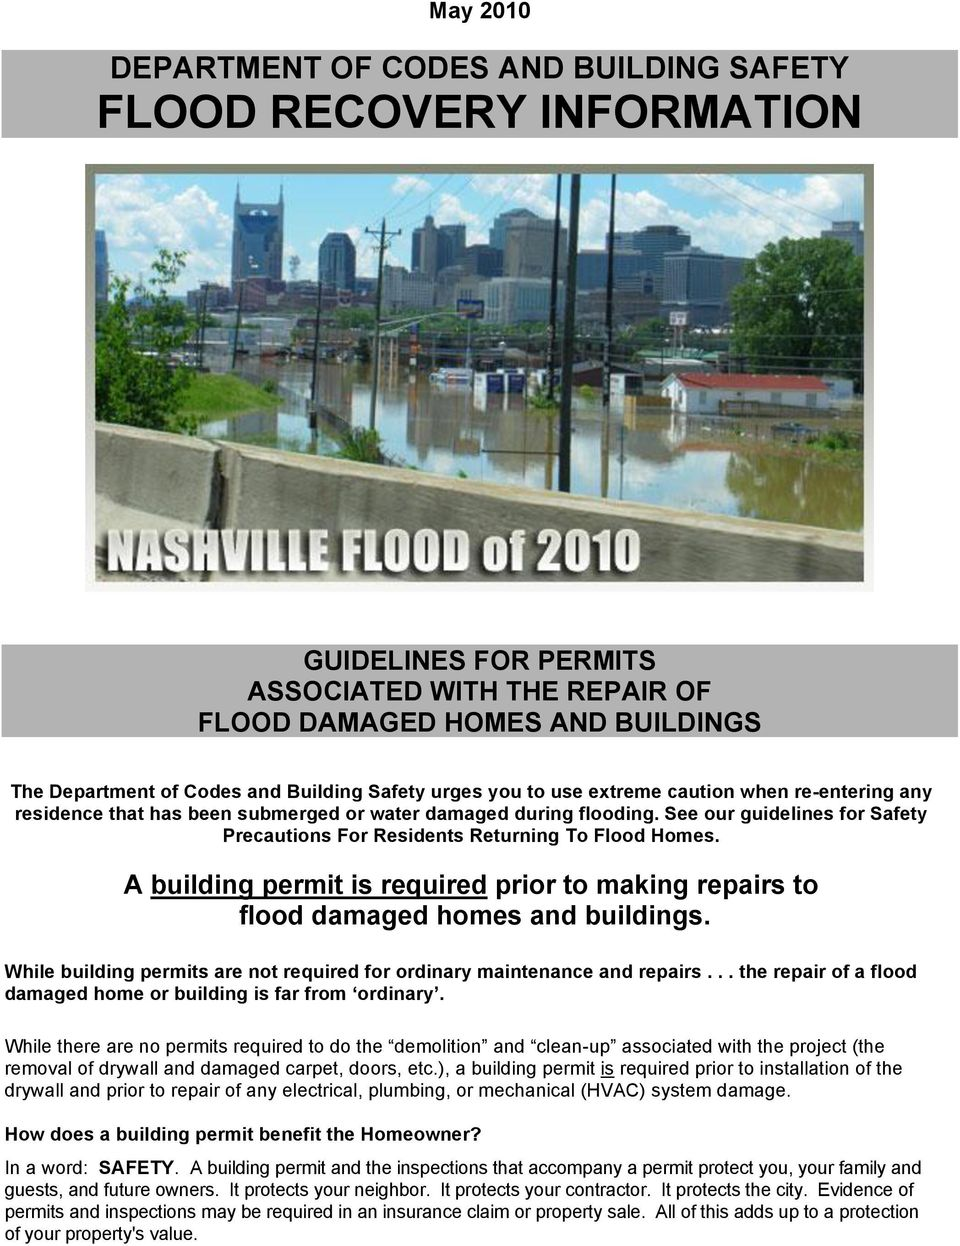 See our guidelines for Safety Precautions For Residents Returning To Flood Homes. A building permit is required prior to making repairs to flood damaged homes and buildings.